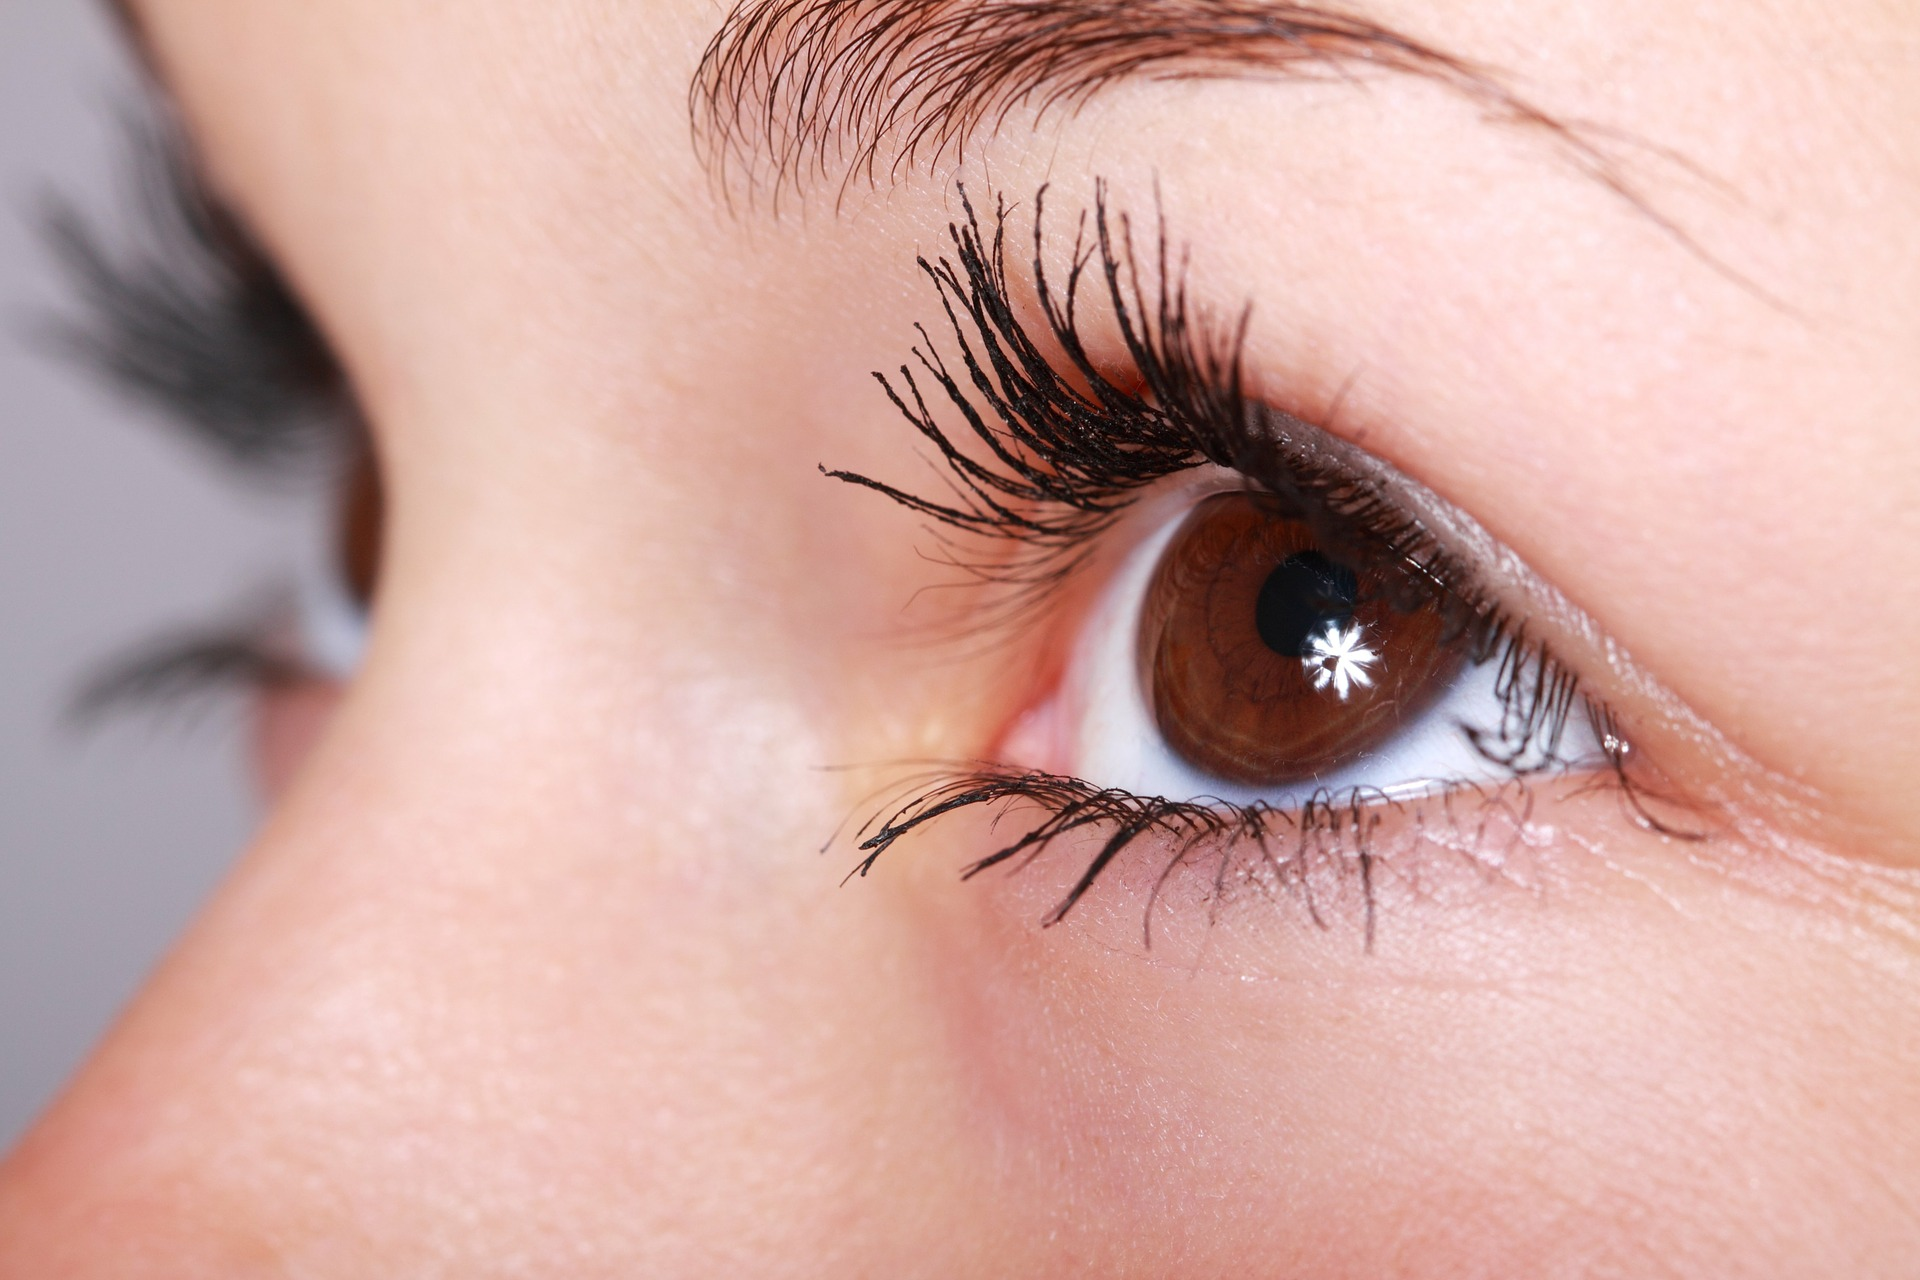 mascaras available in India - Know Best 10 Mascaras in 2018 for Length & Volume with Reviews & Price